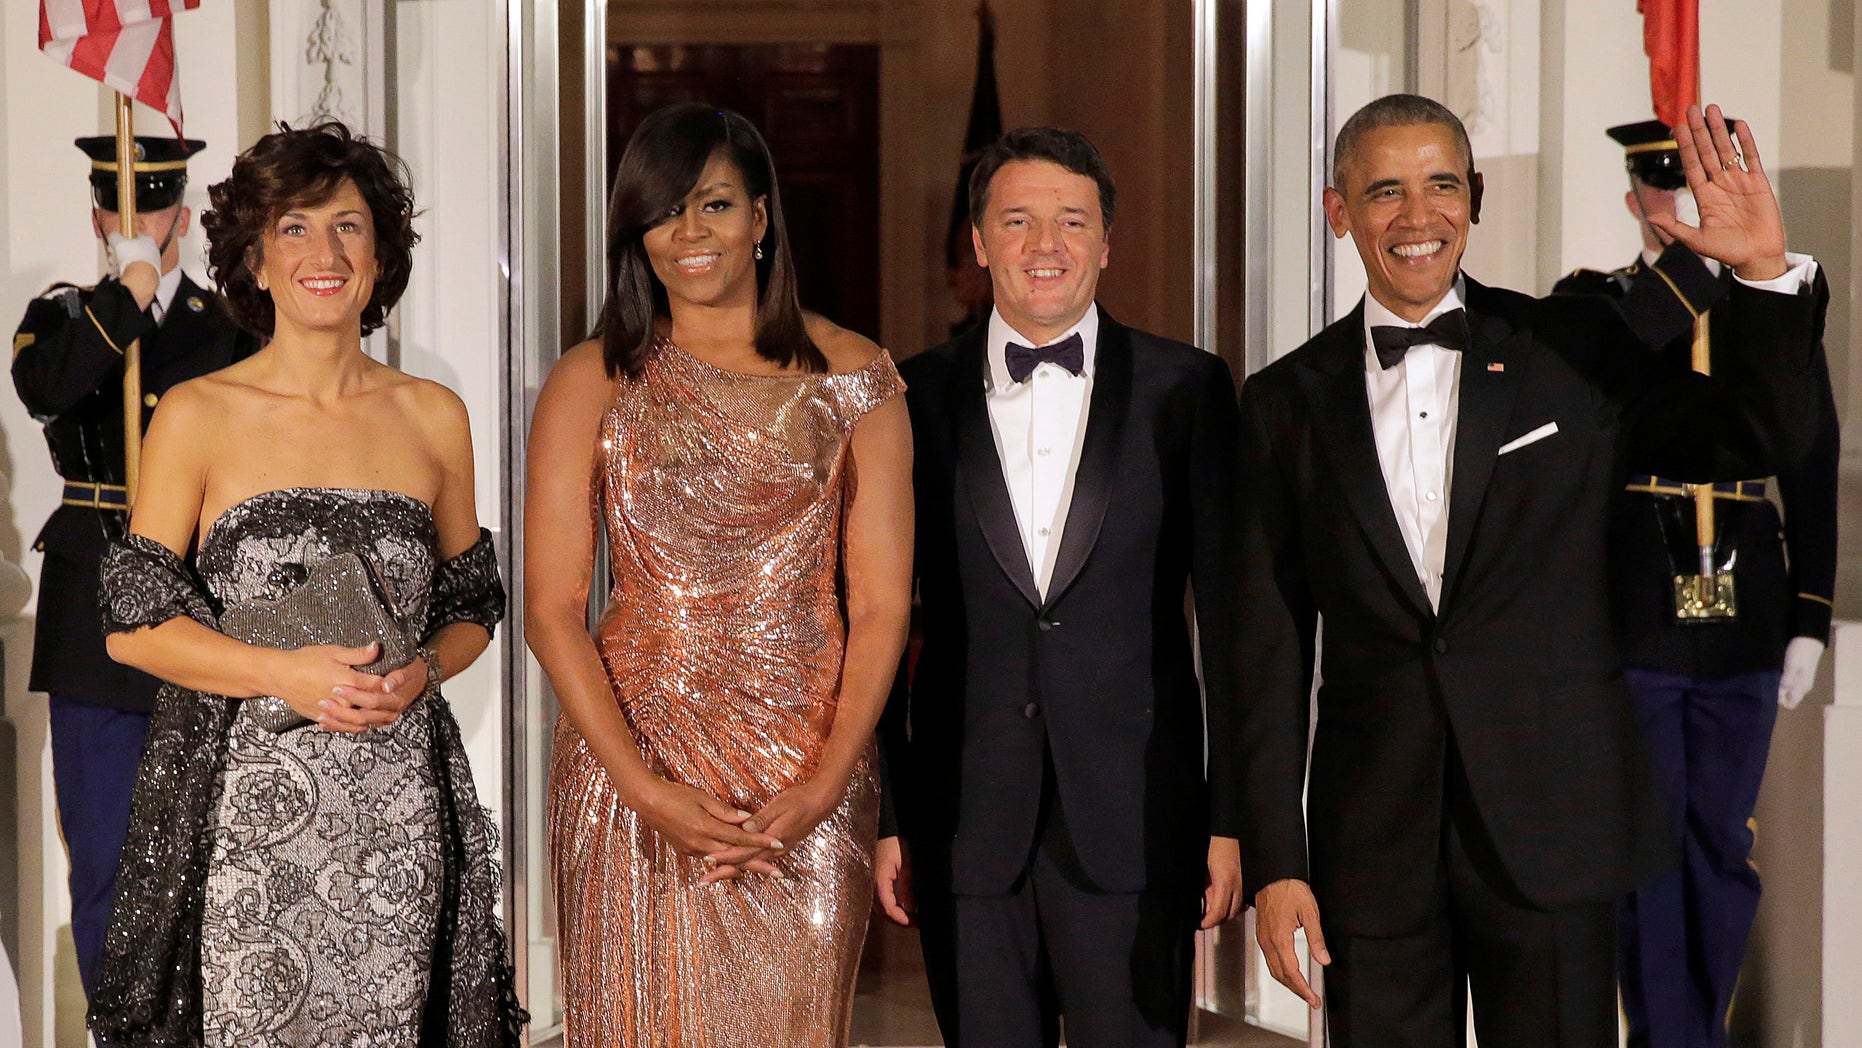 President Barack Obama and First Lady Michelle Obama at their final state dinner with the Italian prime minister and his wife